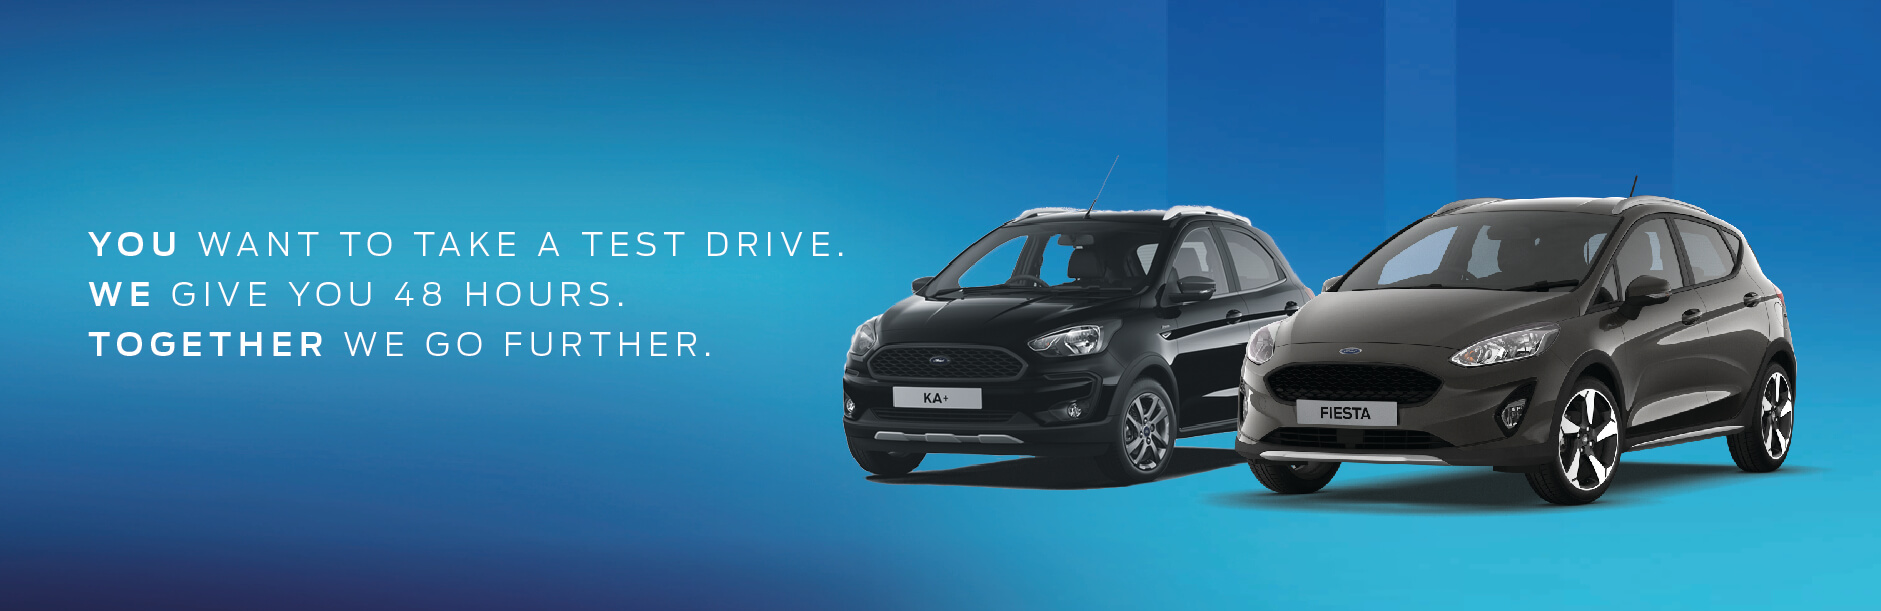 Ford 48 hr test drive Banner